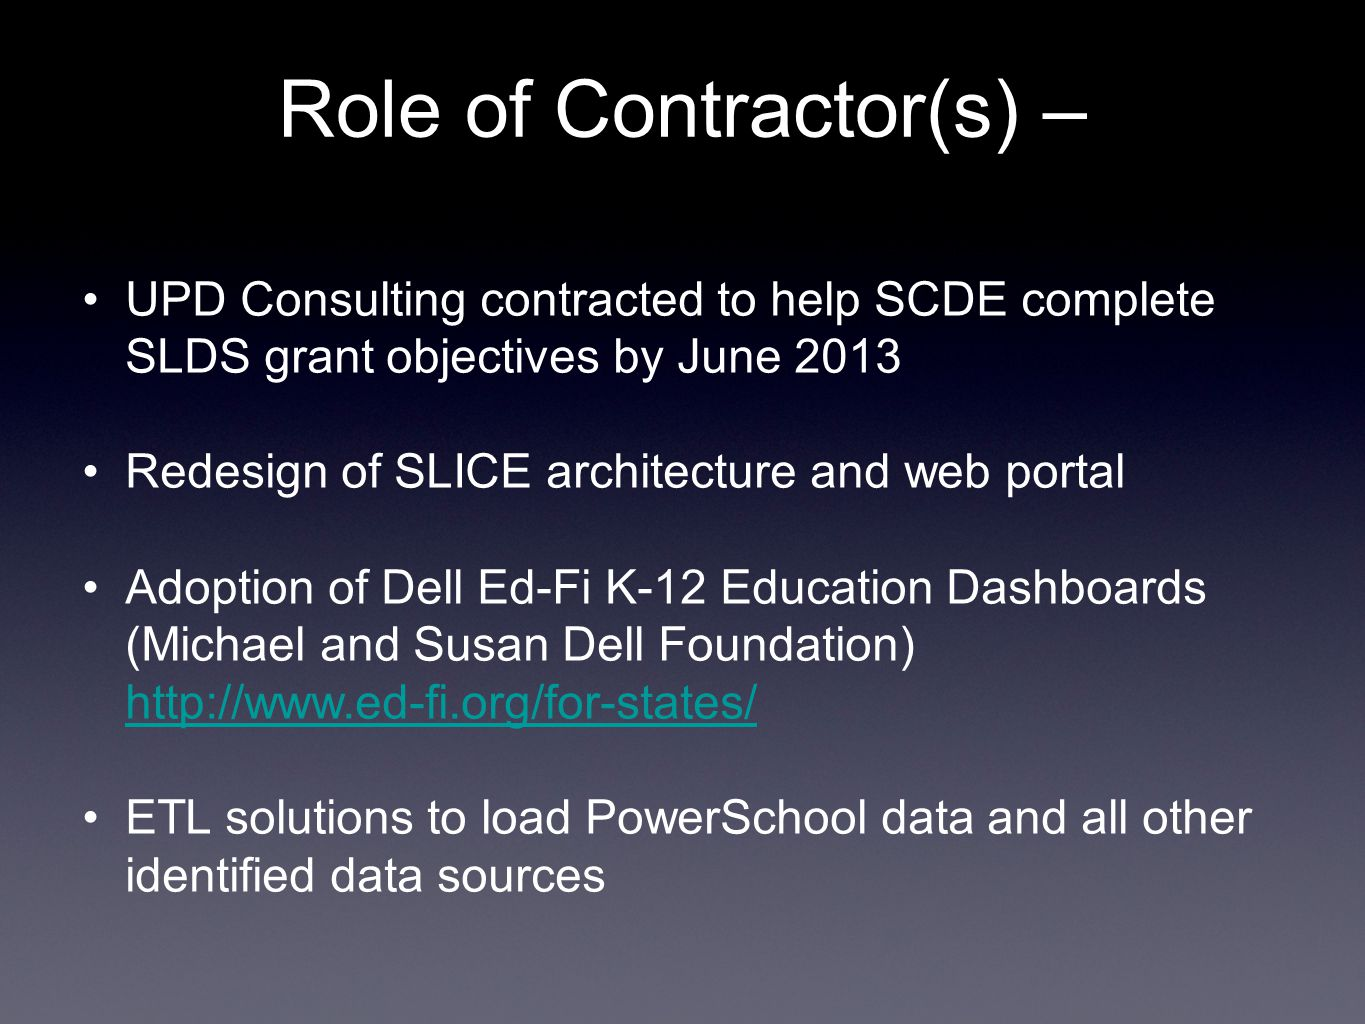 Role of Contractor(s) – UPD Consulting contracted to help SCDE complete SLDS grant objectives by June 2013 Redesign of SLICE architecture and web portal Adoption of Dell Ed-Fi K-12 Education Dashboards (Michael and Susan Dell Foundation) http://www.ed-fi.org/for-states/ http://www.ed-fi.org/for-states/ ETL solutions to load PowerSchool data and all other identified data sources